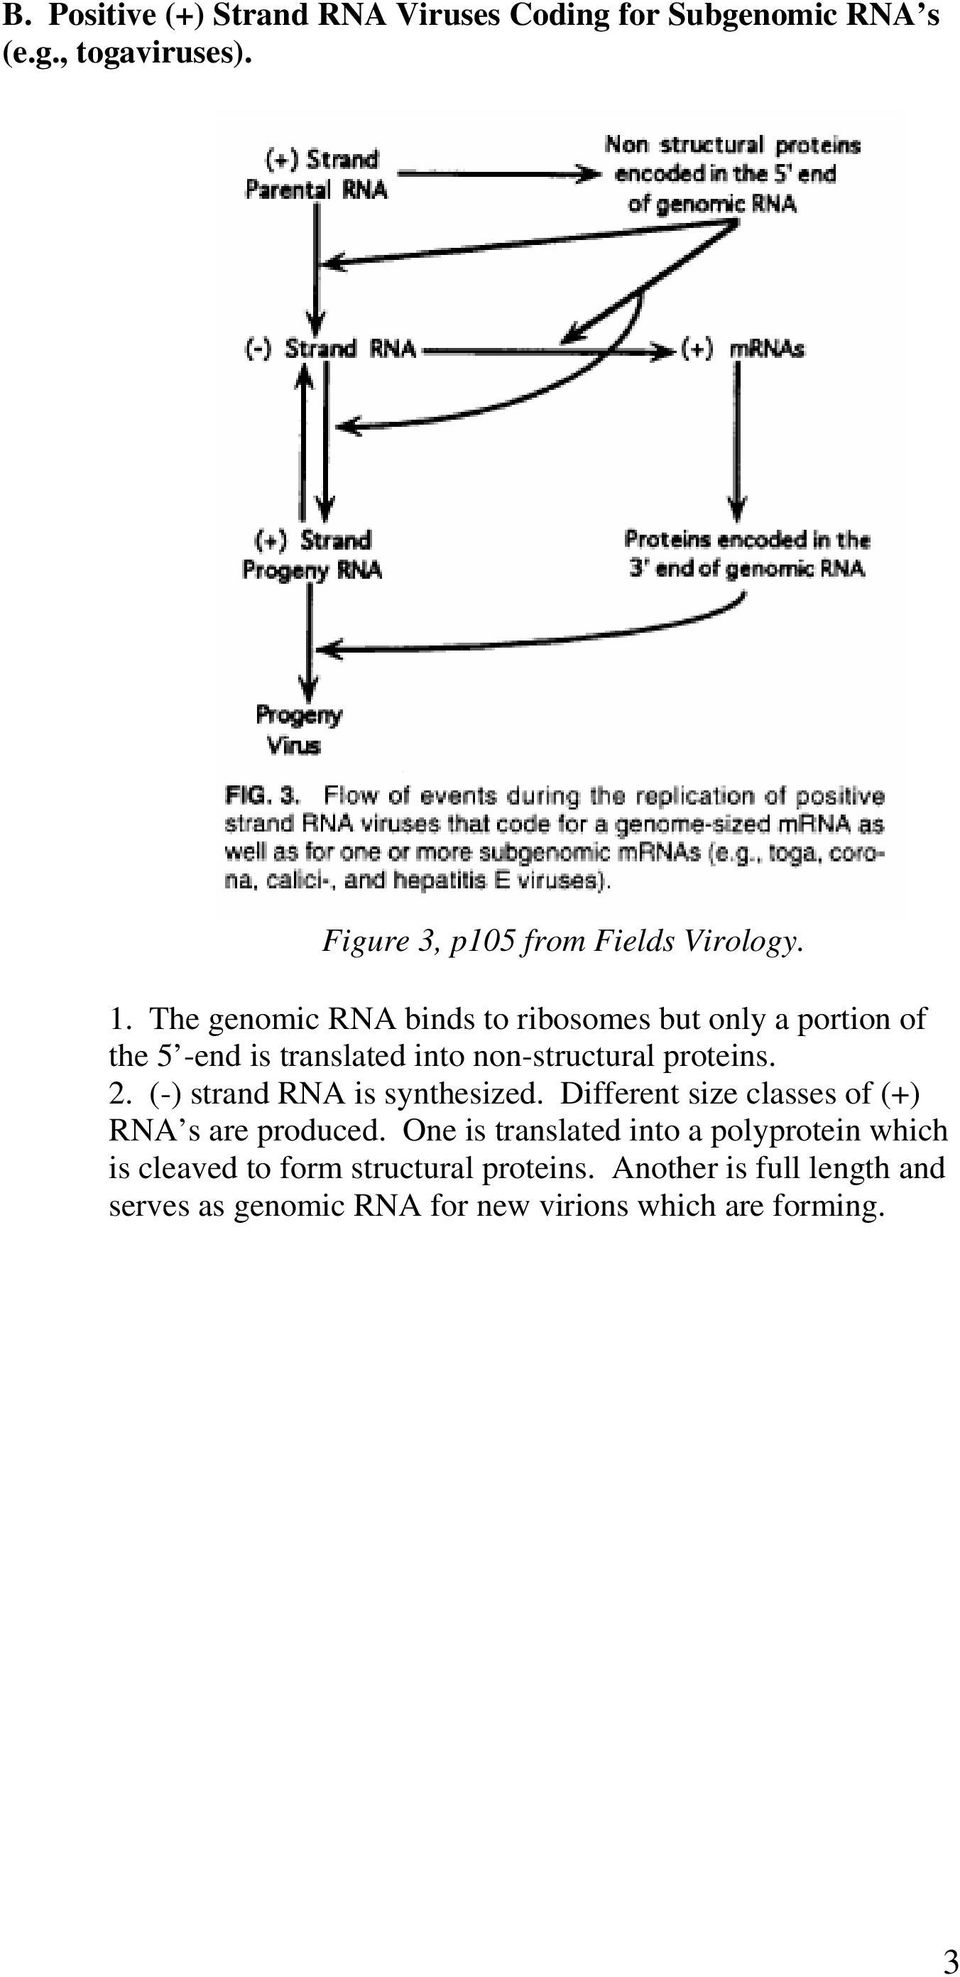 (-) strand RNA is synthesized. Different size classes of (+) RNA s are produced.